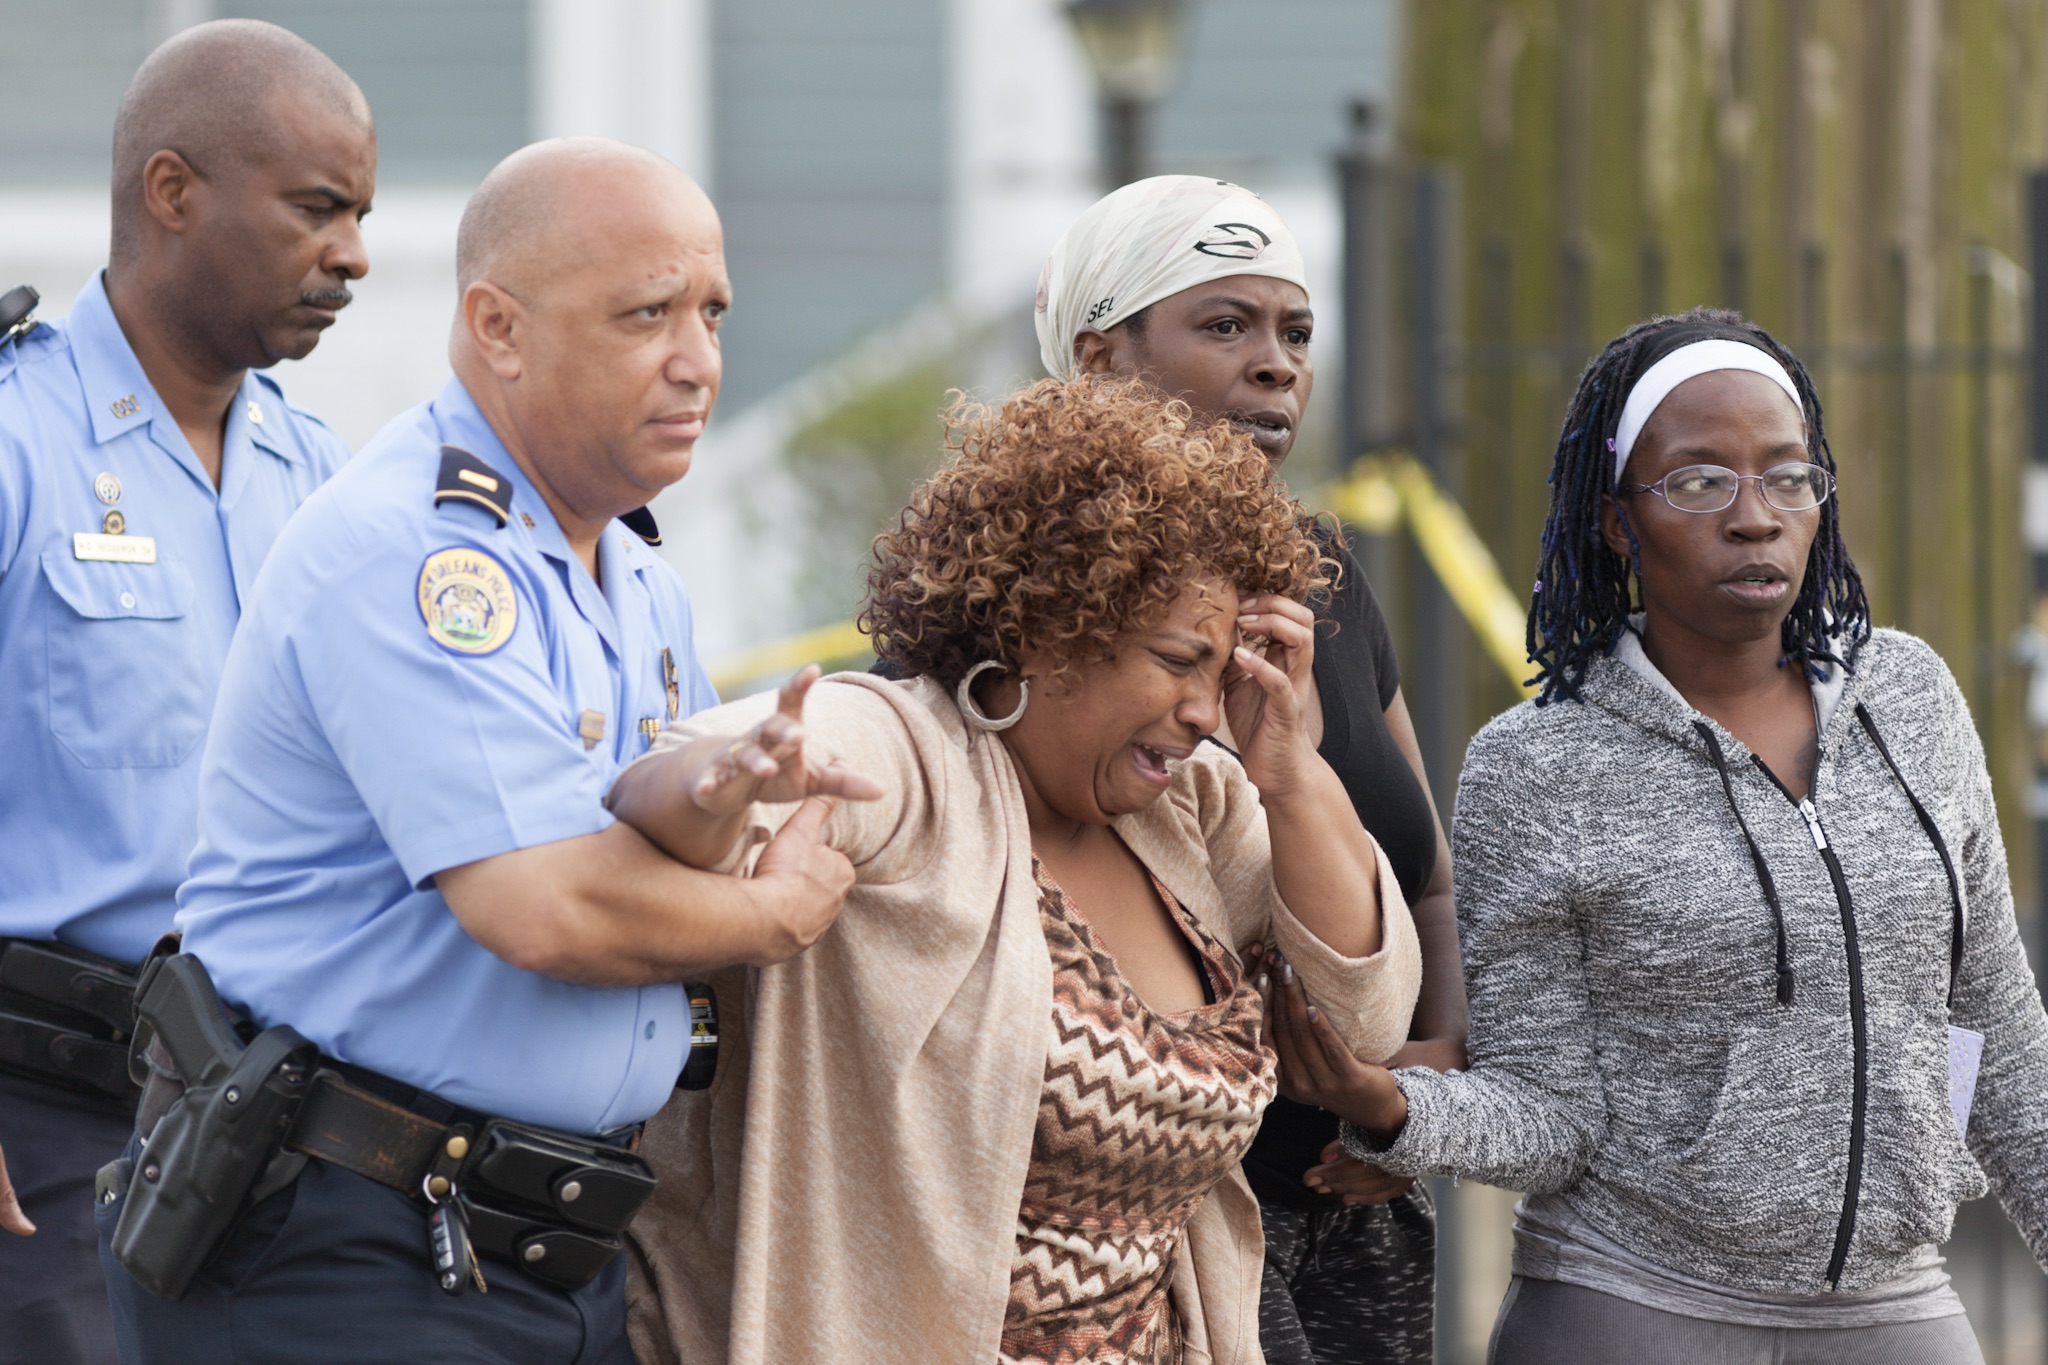 An emotionally distraught woman is assisted by police outside the scene of a triple homicide at 4237 Touro St. in the New Orleans neighborhood of Gentilly where 30-year-old Monique Smith, 10-year-old Justin Simms and 6-year-old Jumyrin Smith were found shot and killed. A fourth victim, A'Miya Smith, age 12, was transported to an area hospital in critical condition.